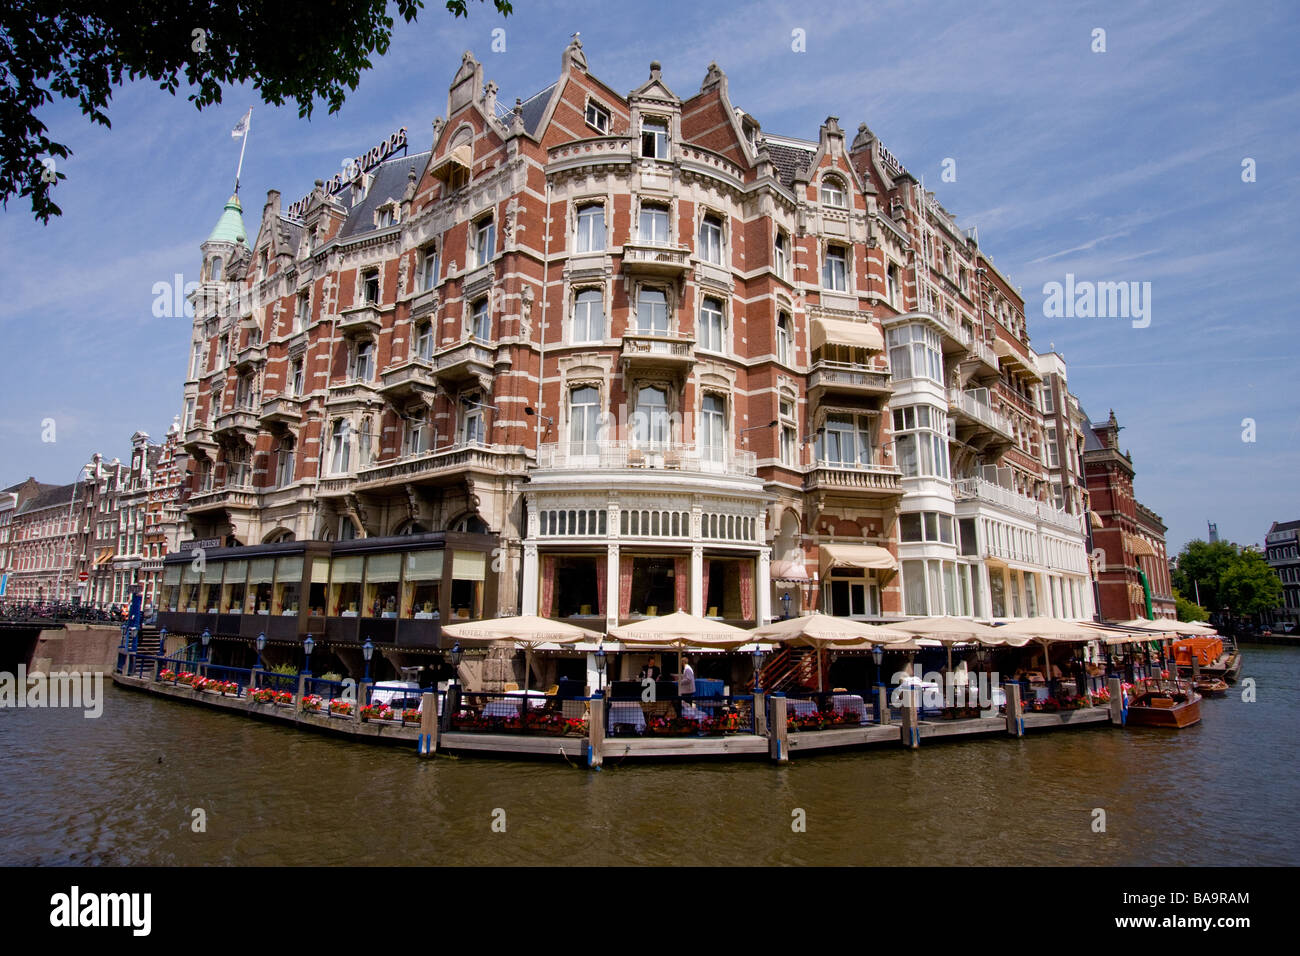 luxury hotel de l 39 europe on the amstel river in amsterdam stock photo royalty free image. Black Bedroom Furniture Sets. Home Design Ideas